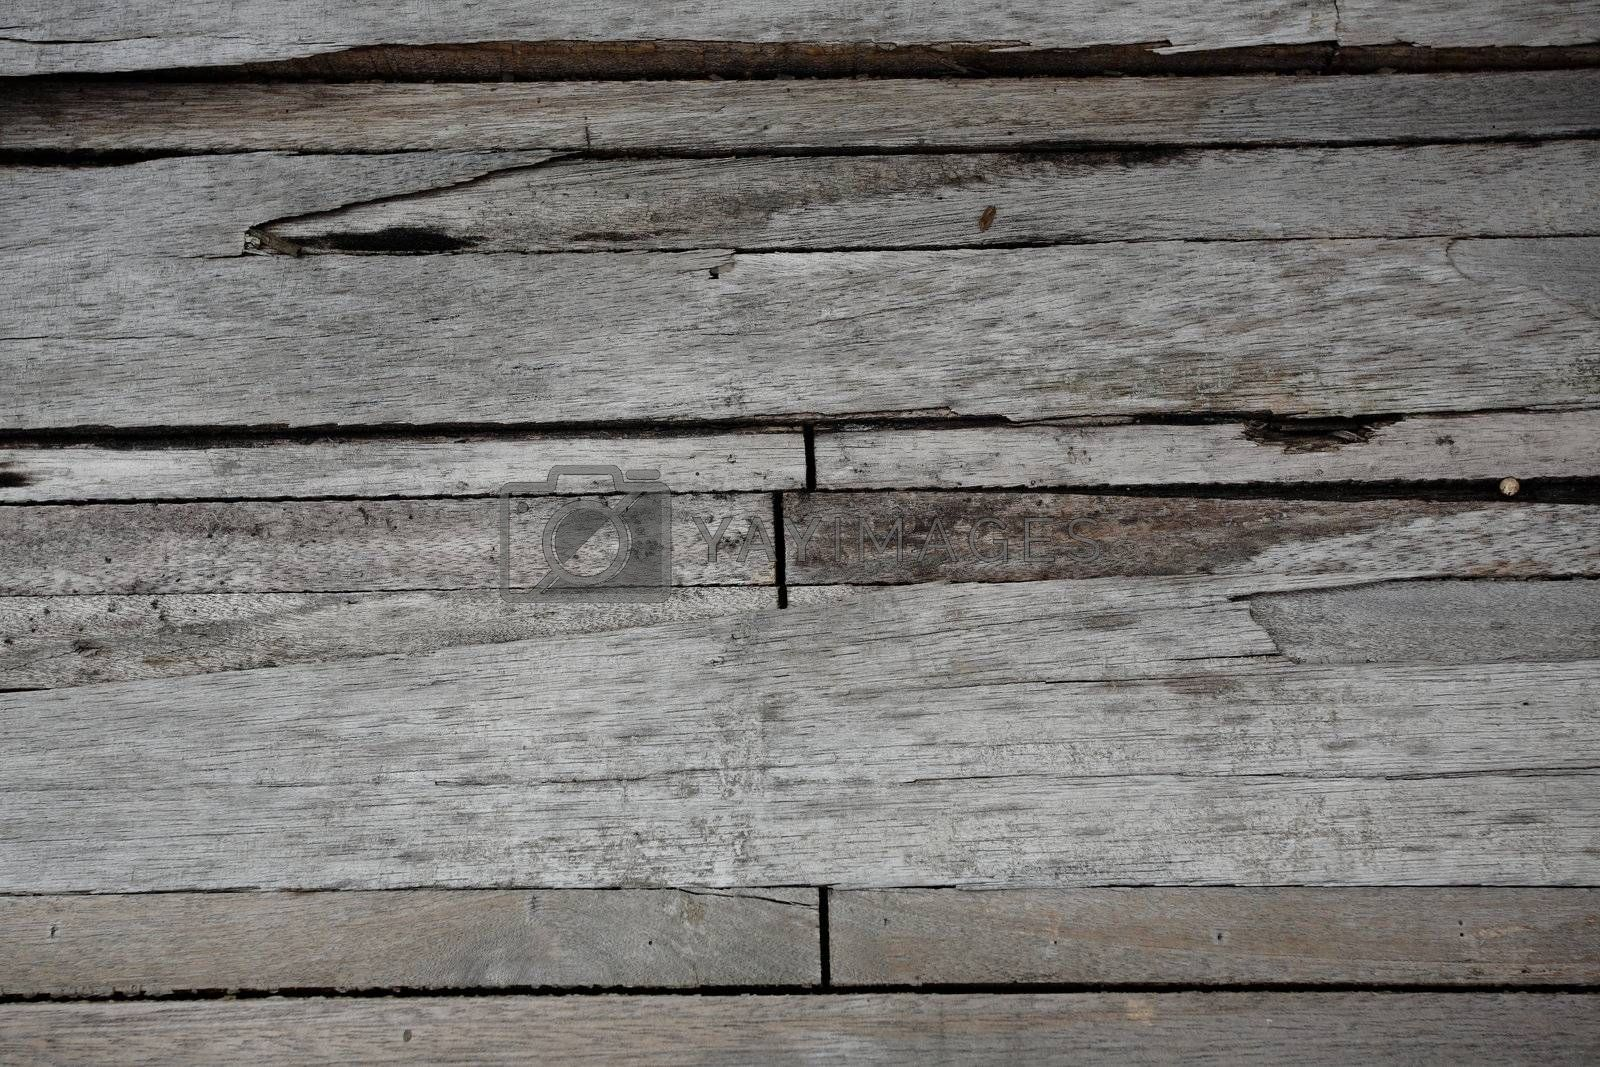 Royalty free image of old wood background by leungchopan